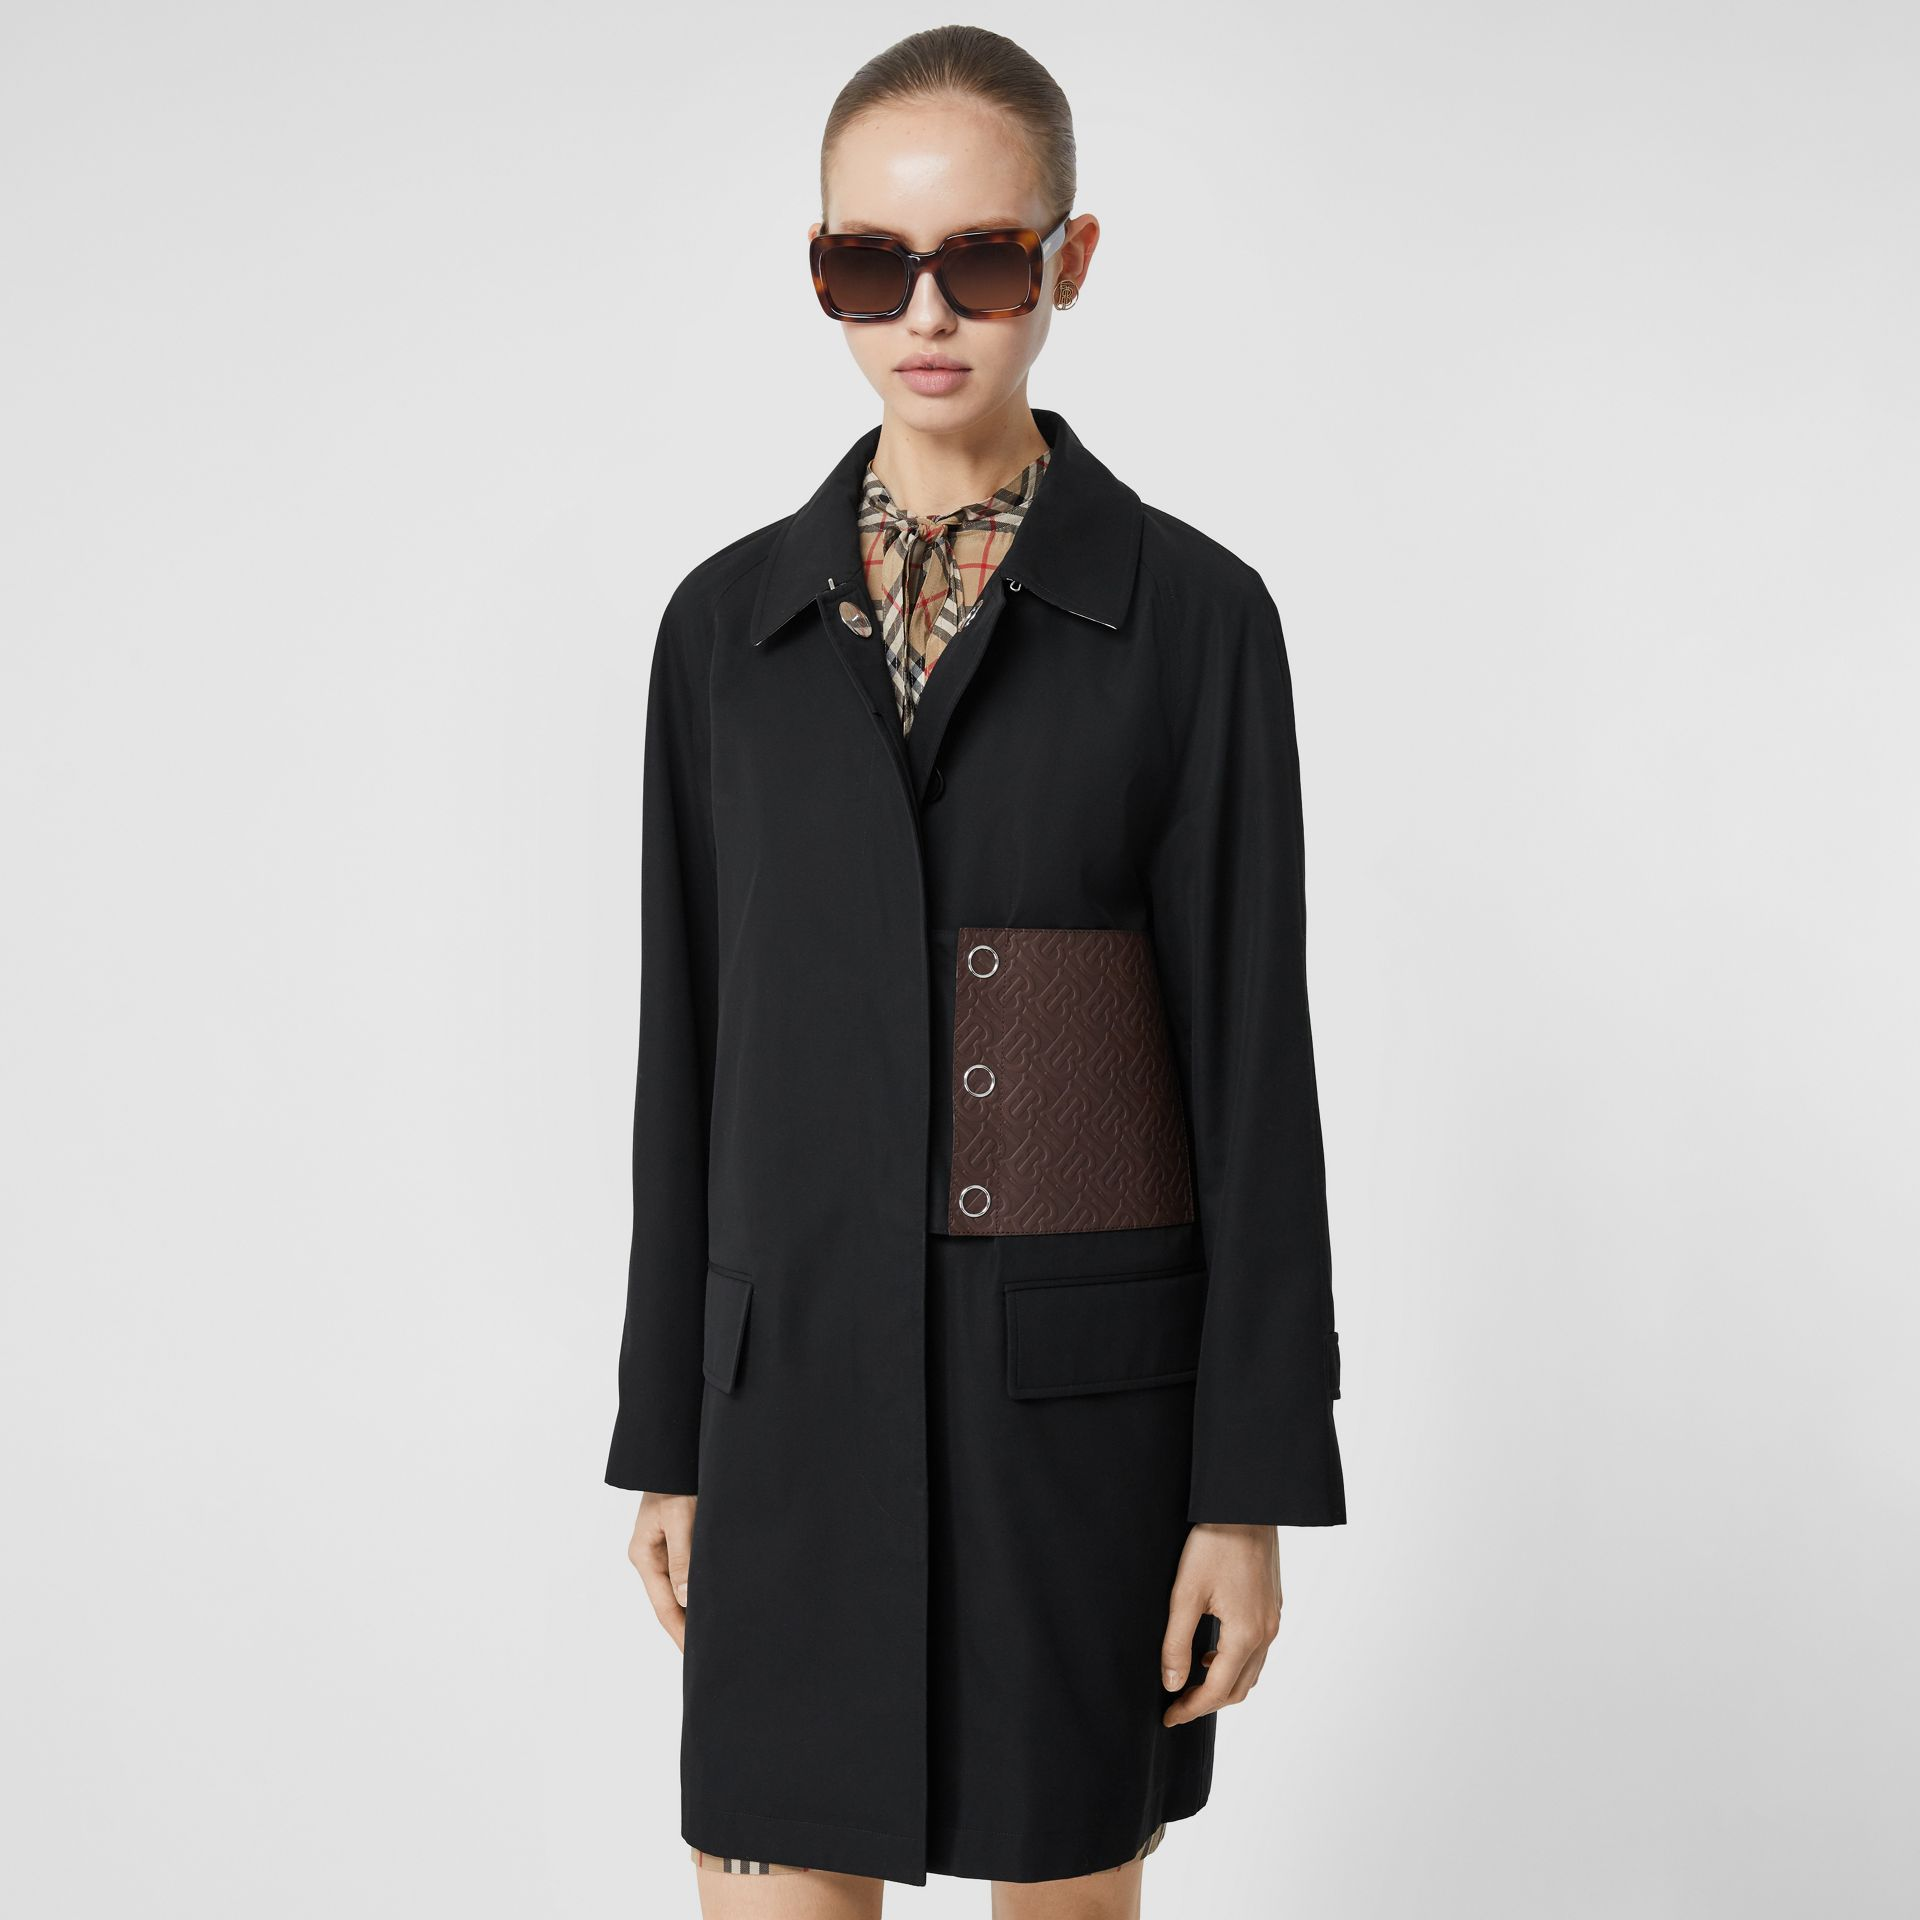 Monogram Leather Detail Cotton Gabardine Car Coat in Black - Women | Burberry - gallery image 6